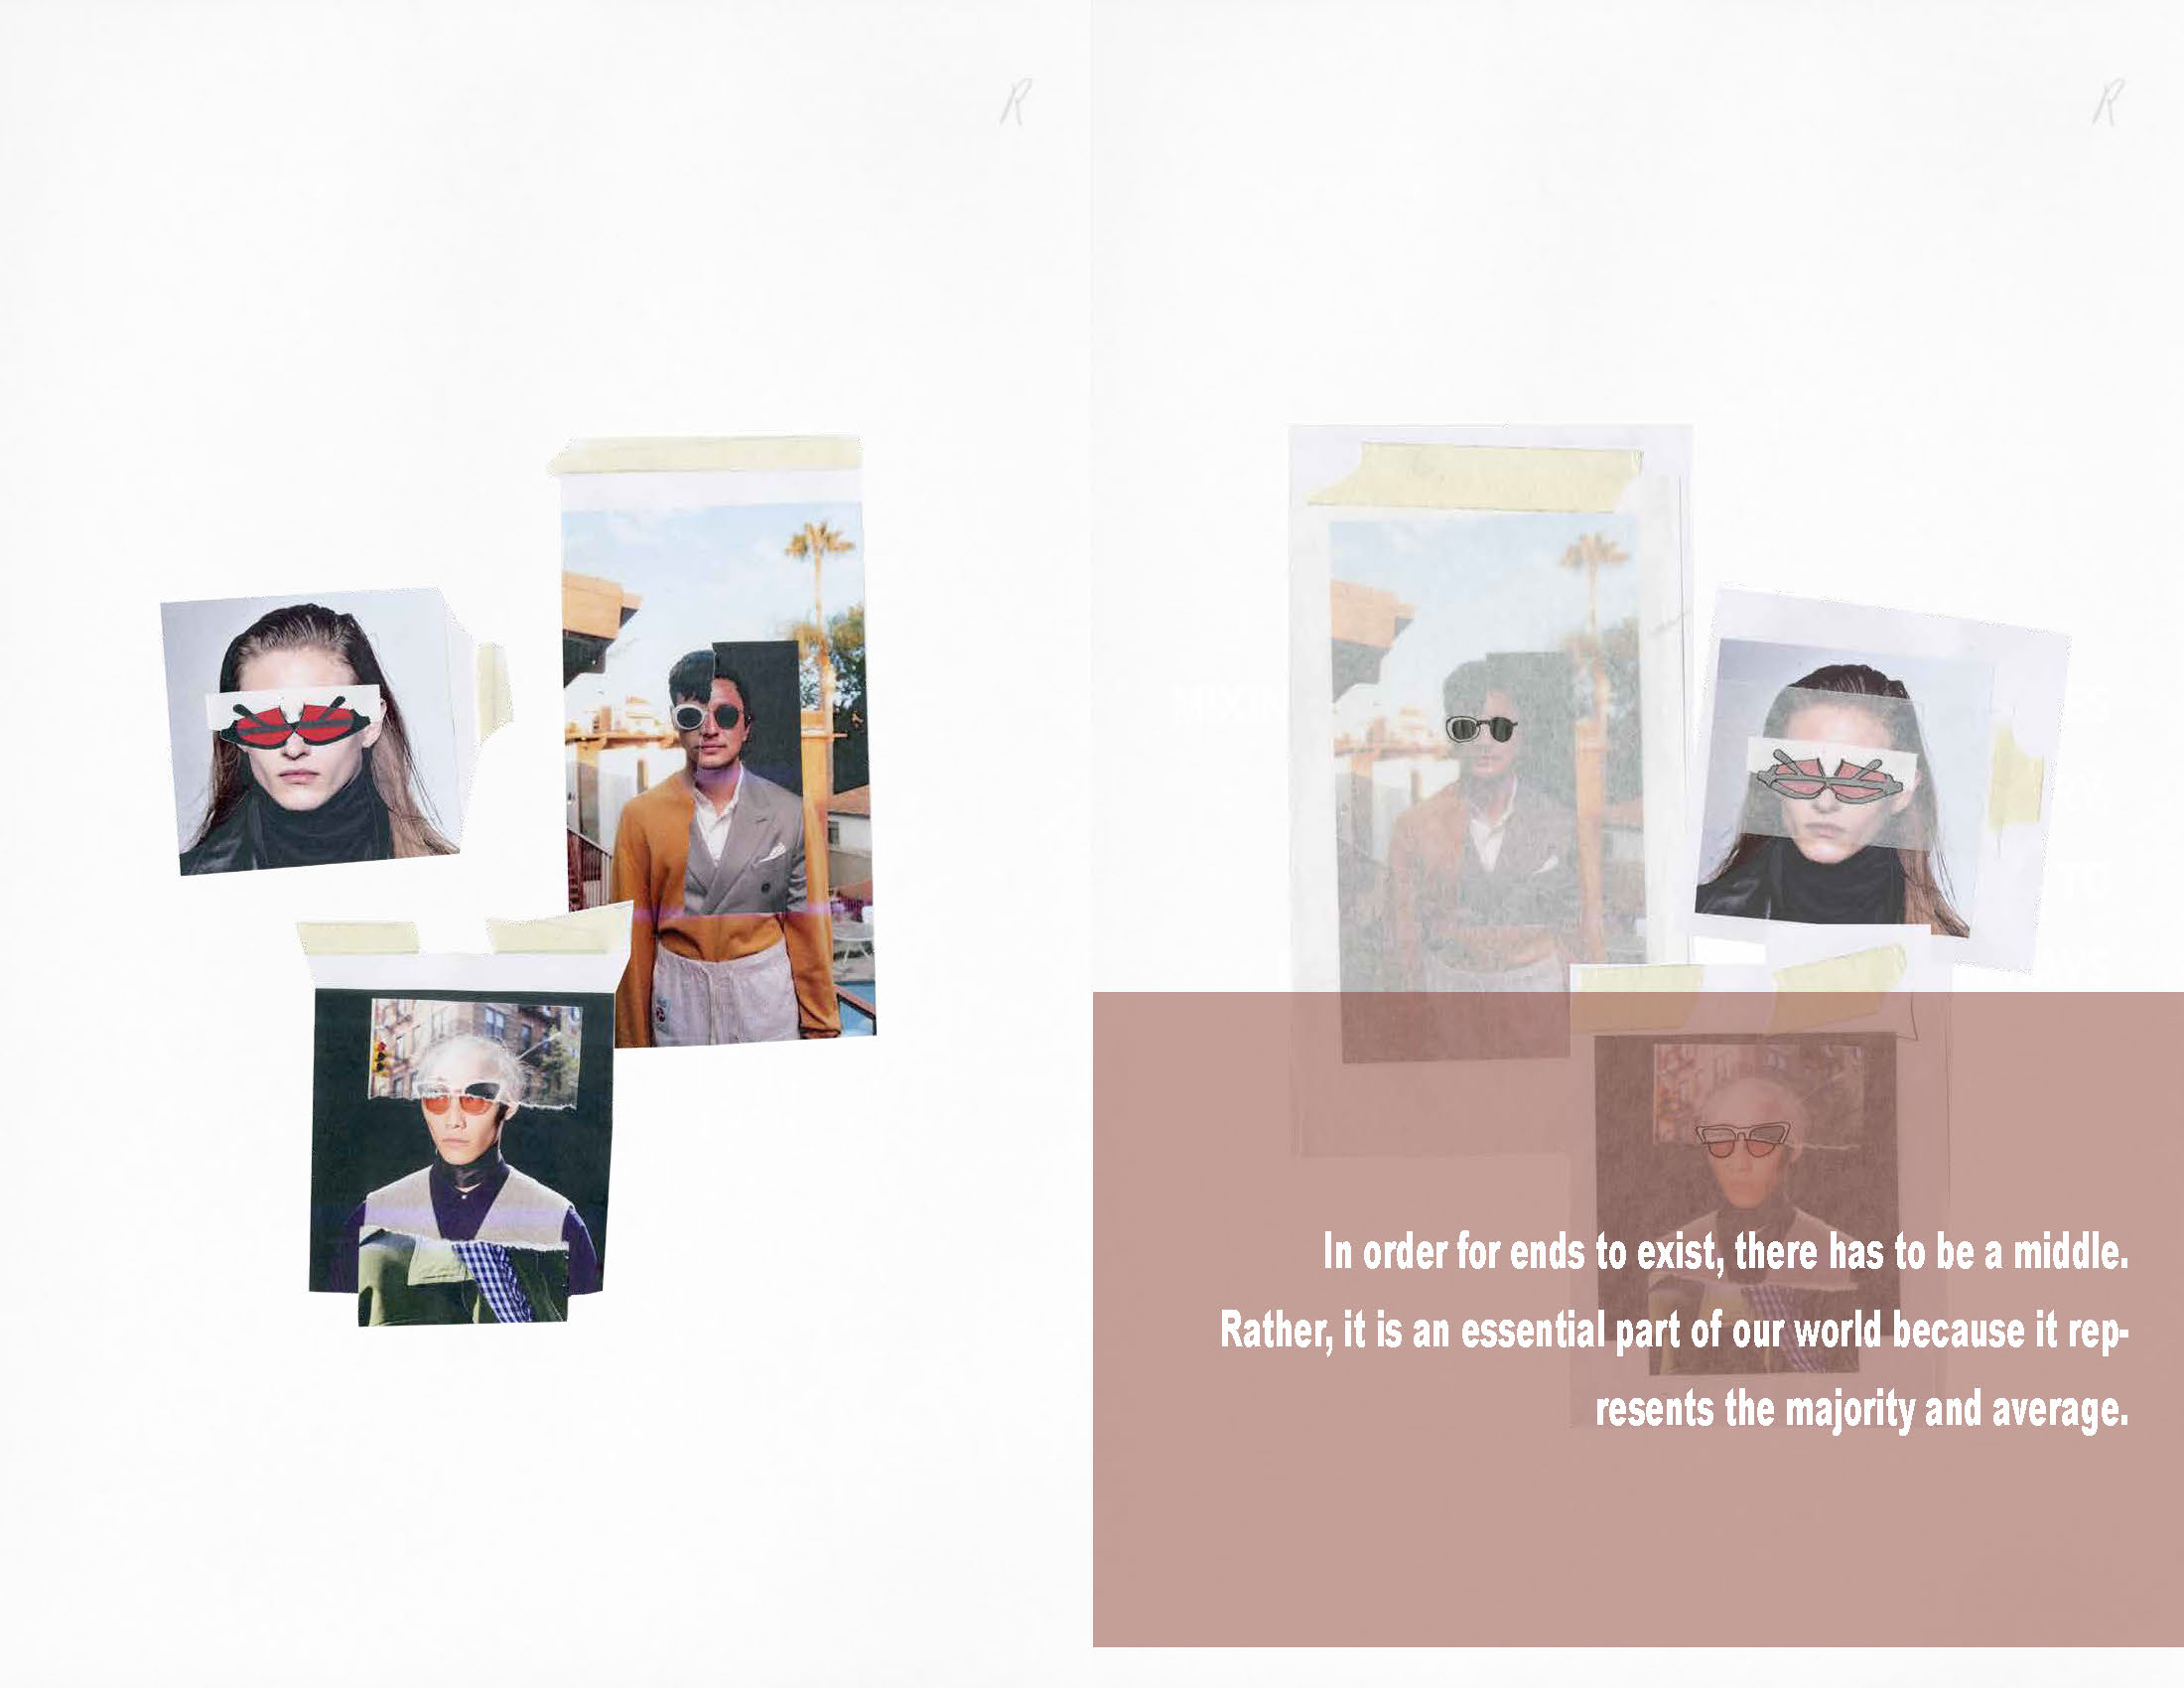 Middle: Sunglasses